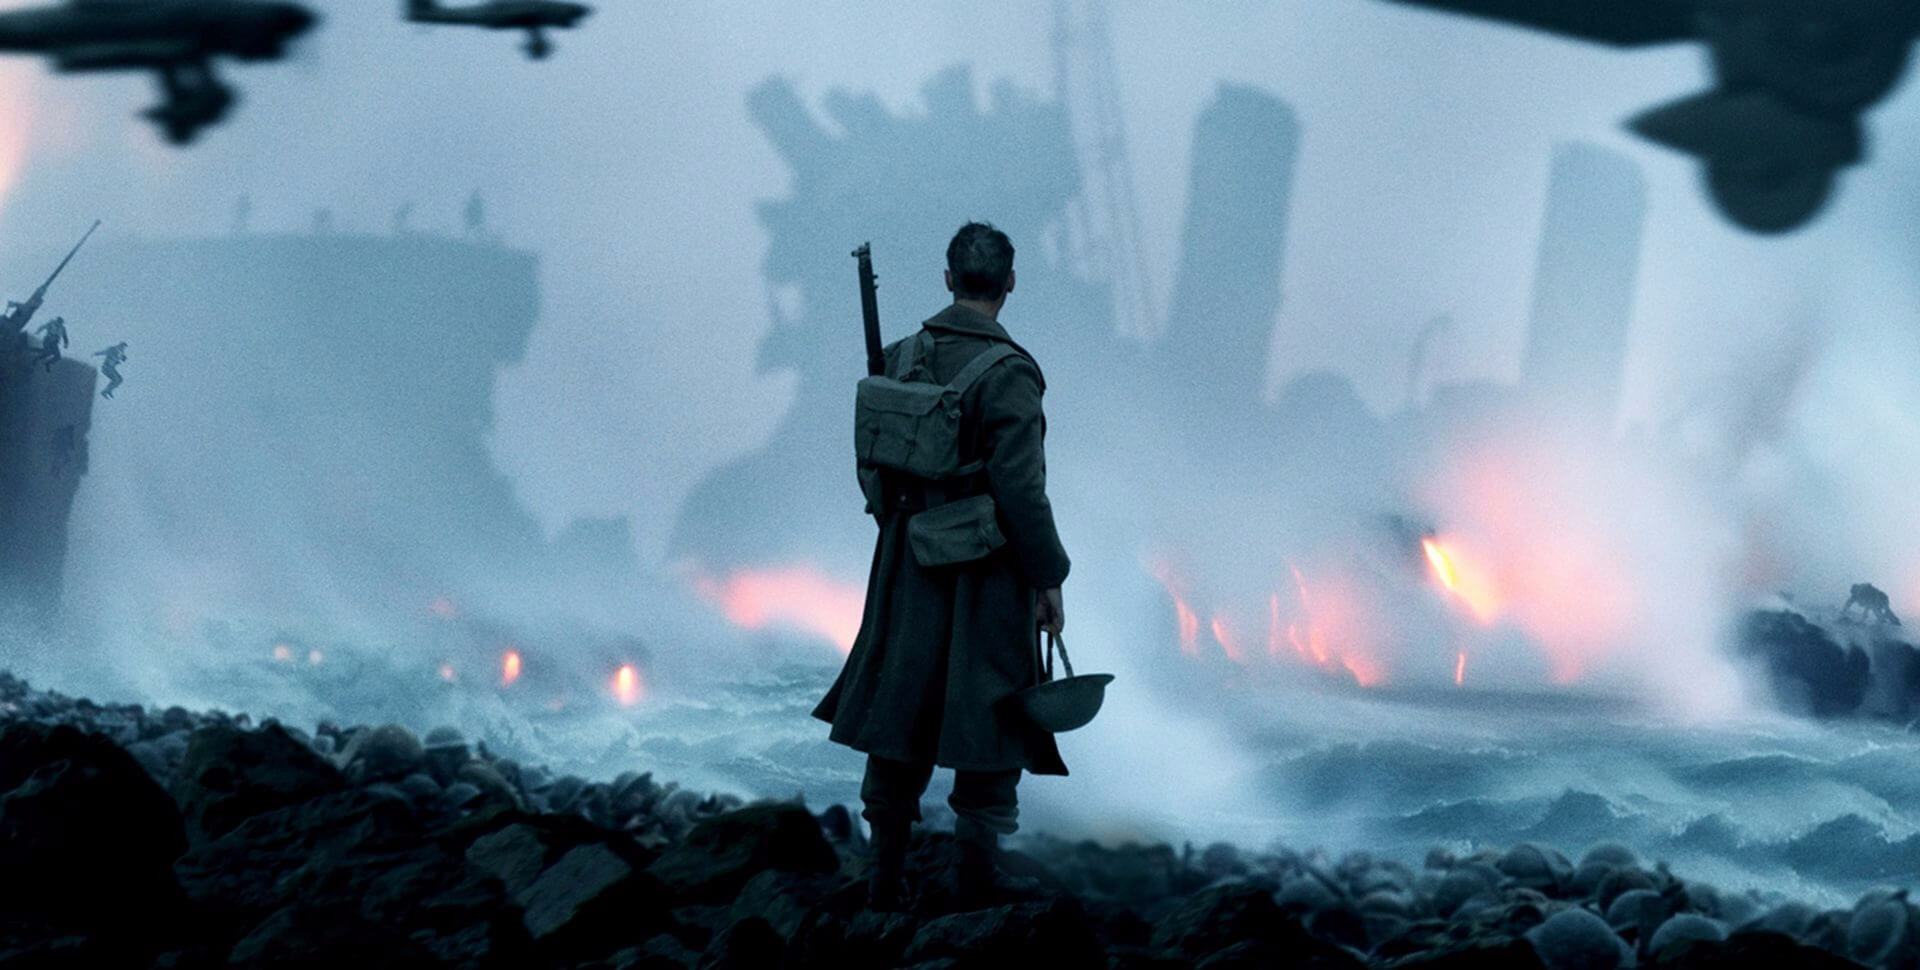 Dunkirk 2017 Spoiler Free Movie Review